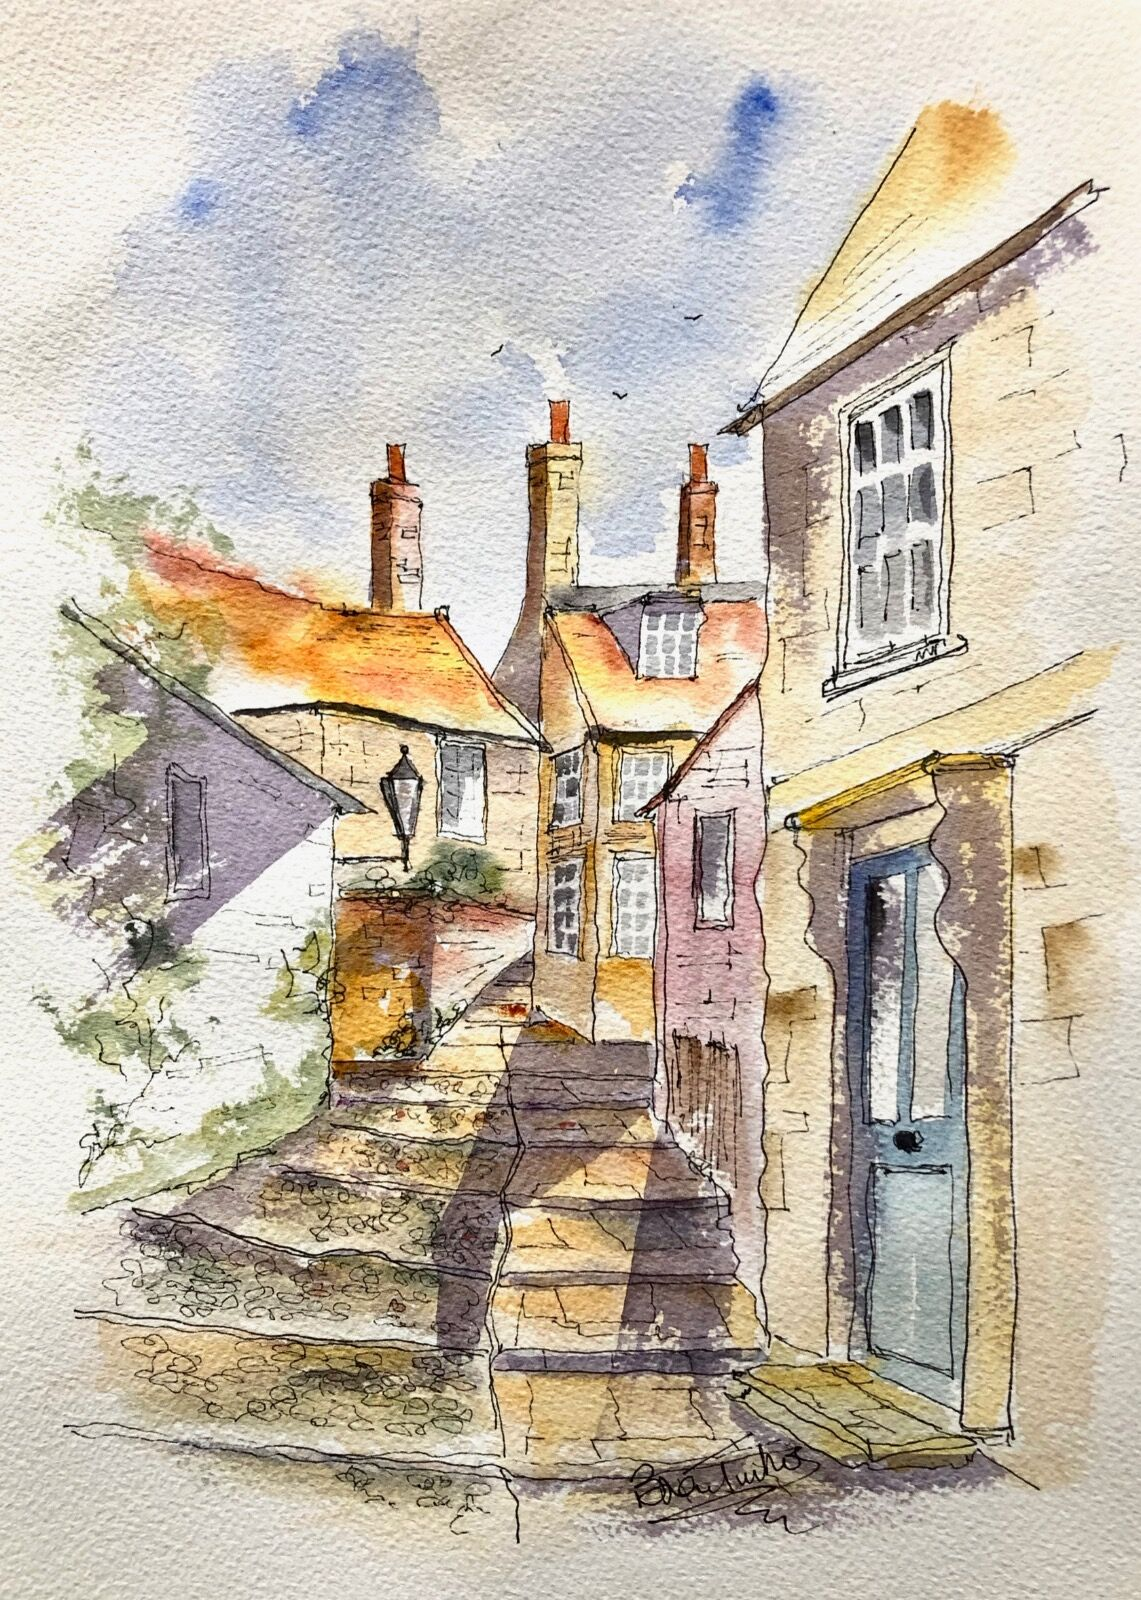 The Village of Robin Hoods Bay in Yorkshire